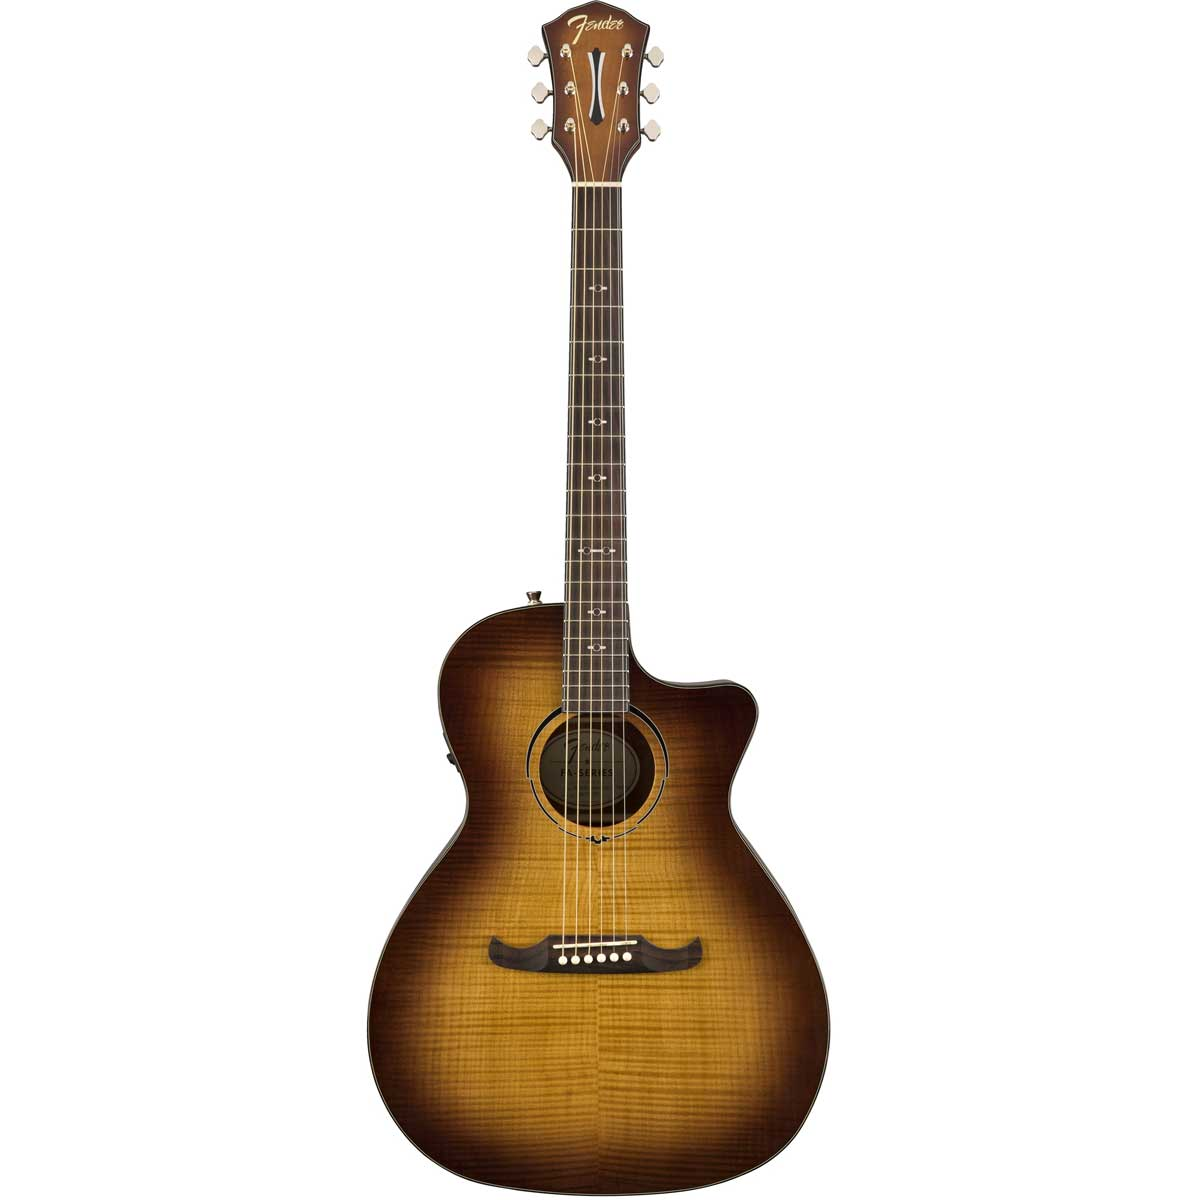 Fender FA-345CE Auditorium western-guitar 3-tone tea burst